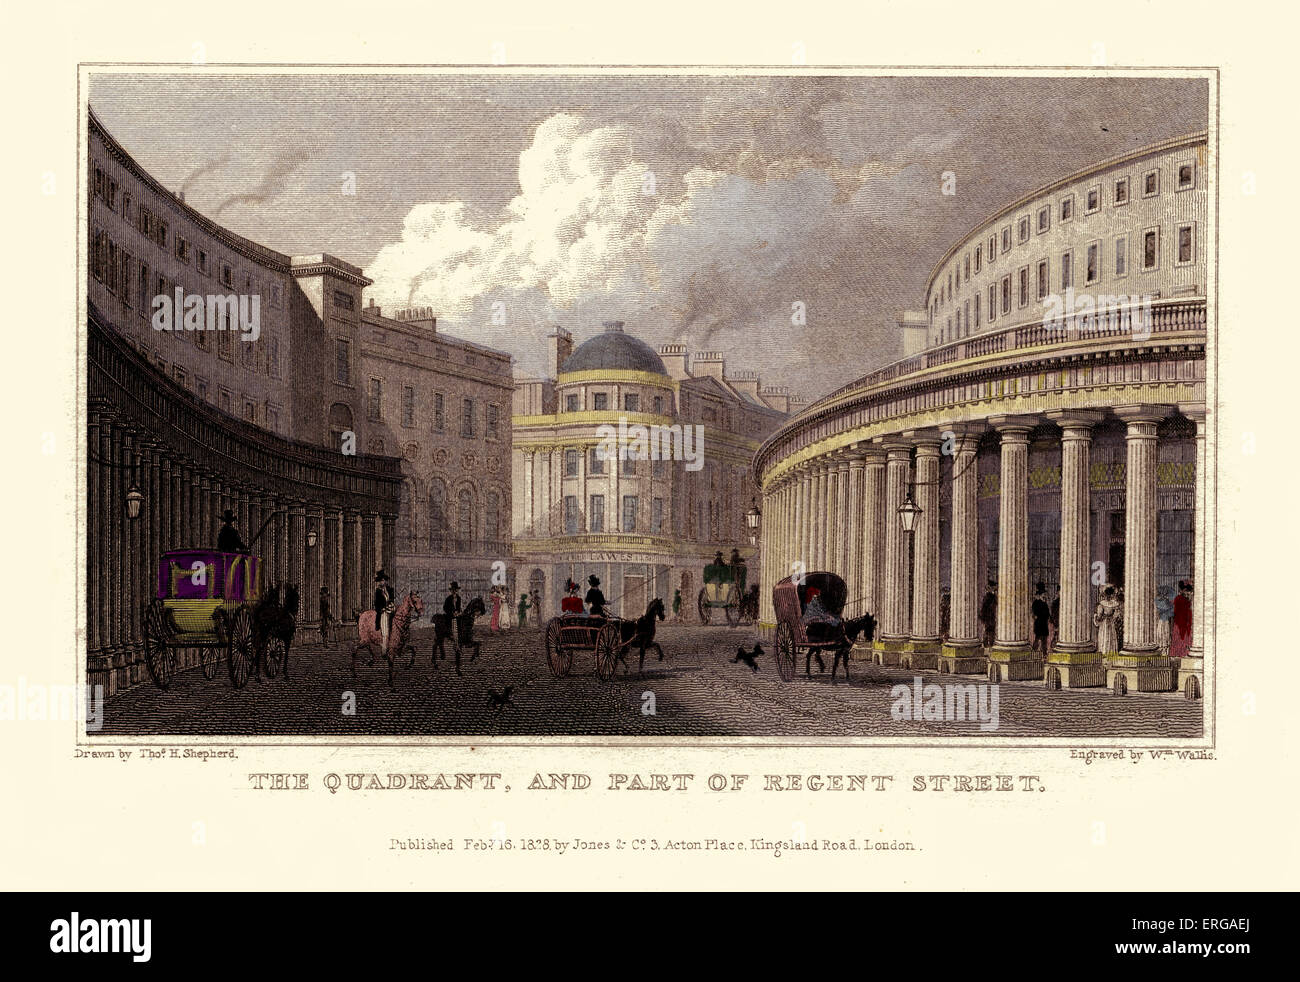 London Views:  The Quadrant, and part of Regent Street.  Drawn by Thomas Hosmer Shepherd 1792 – 1864. Engraved by - Stock Image